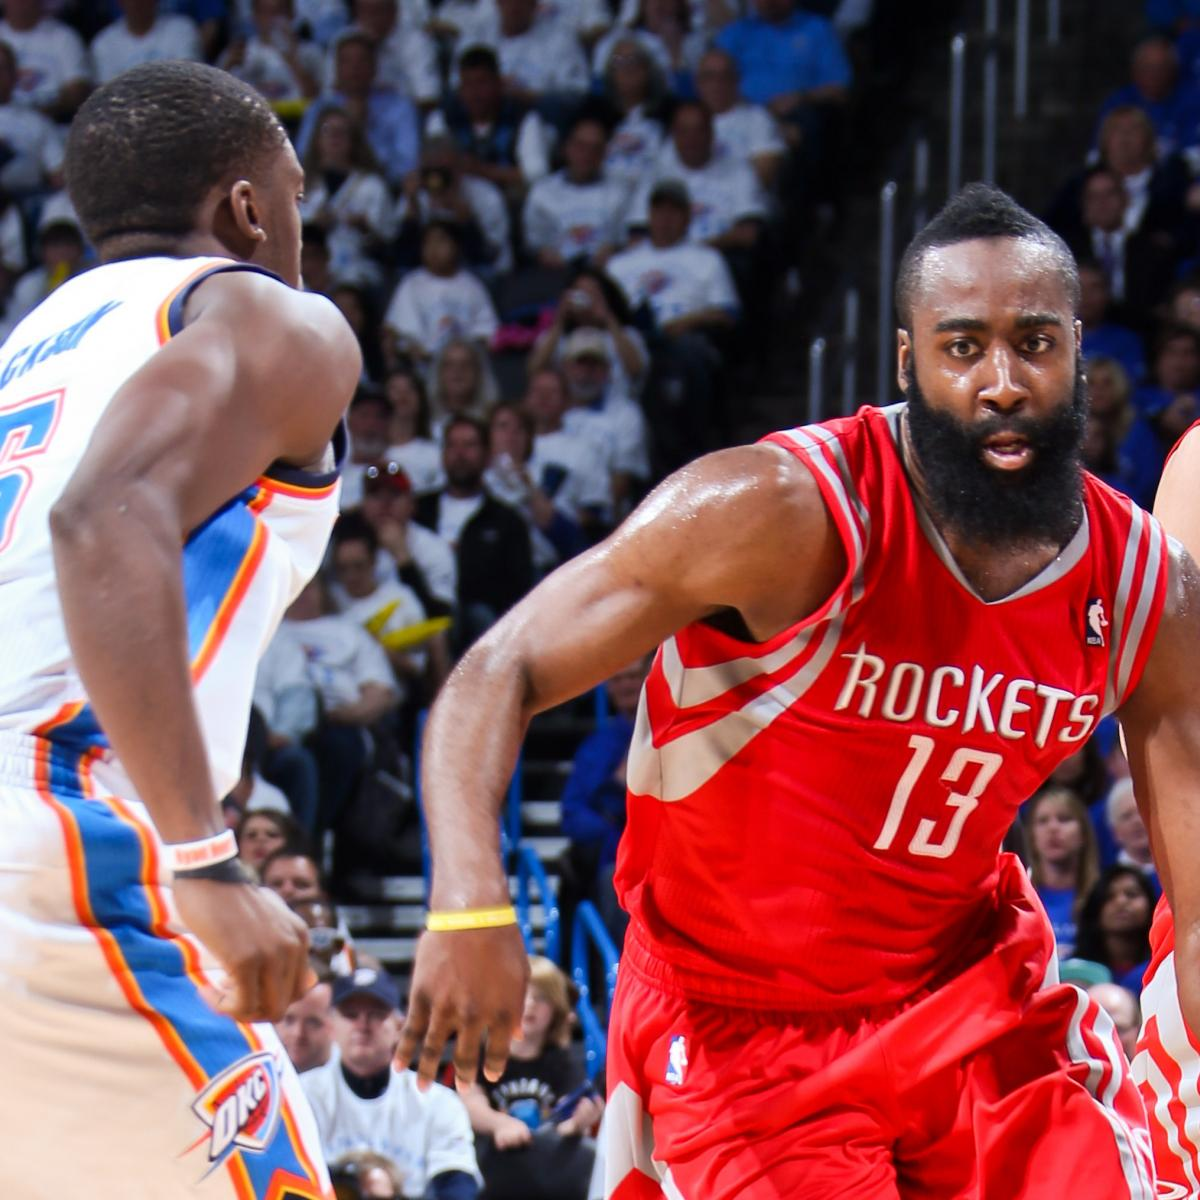 Houston Rockets Vs Okc: Houston Rockets Vs. Oklahoma City Thunder: Live Score